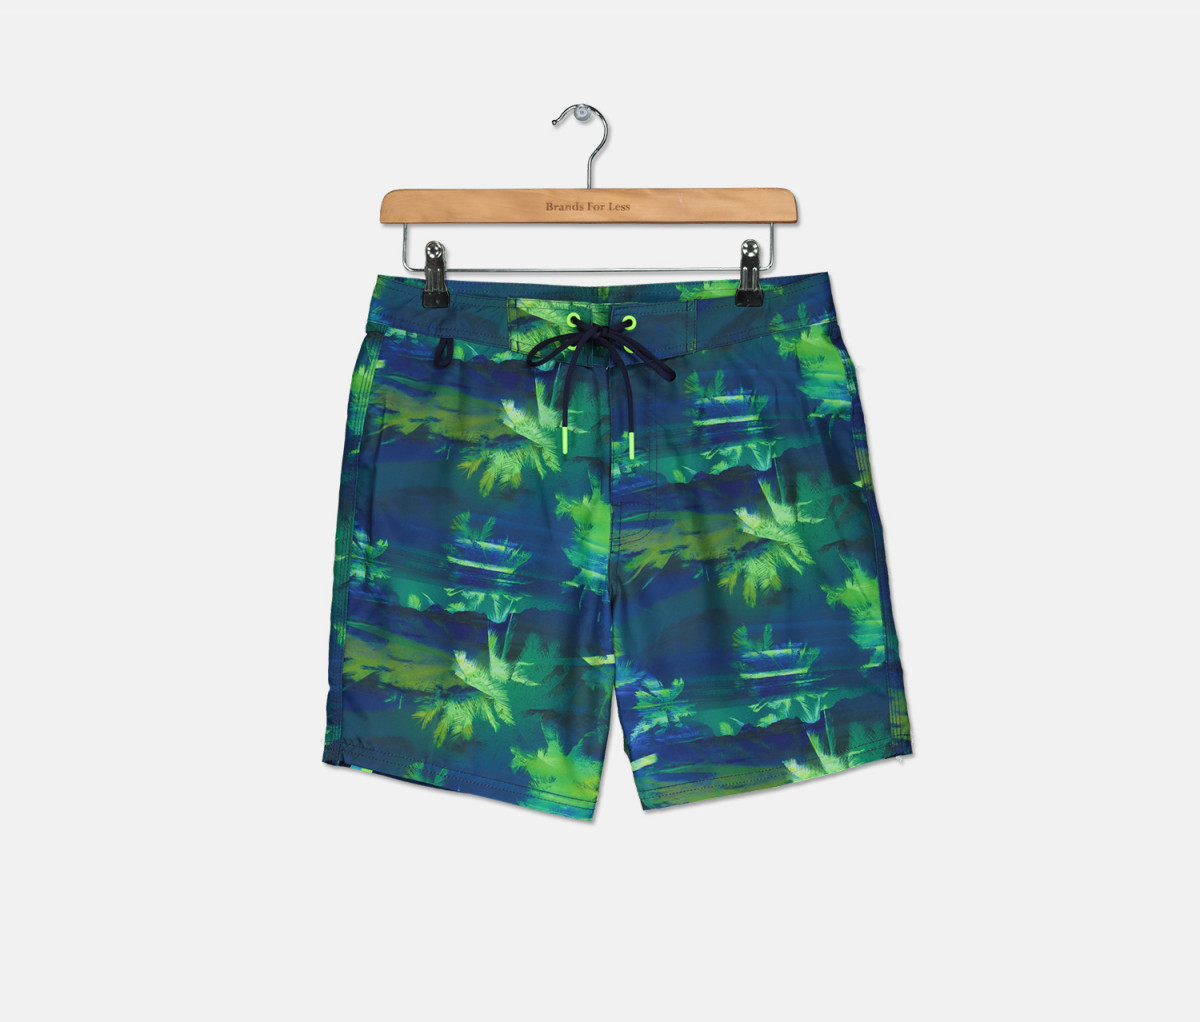 Sundek Mens Printed Boardshort  Navy/Green Combo